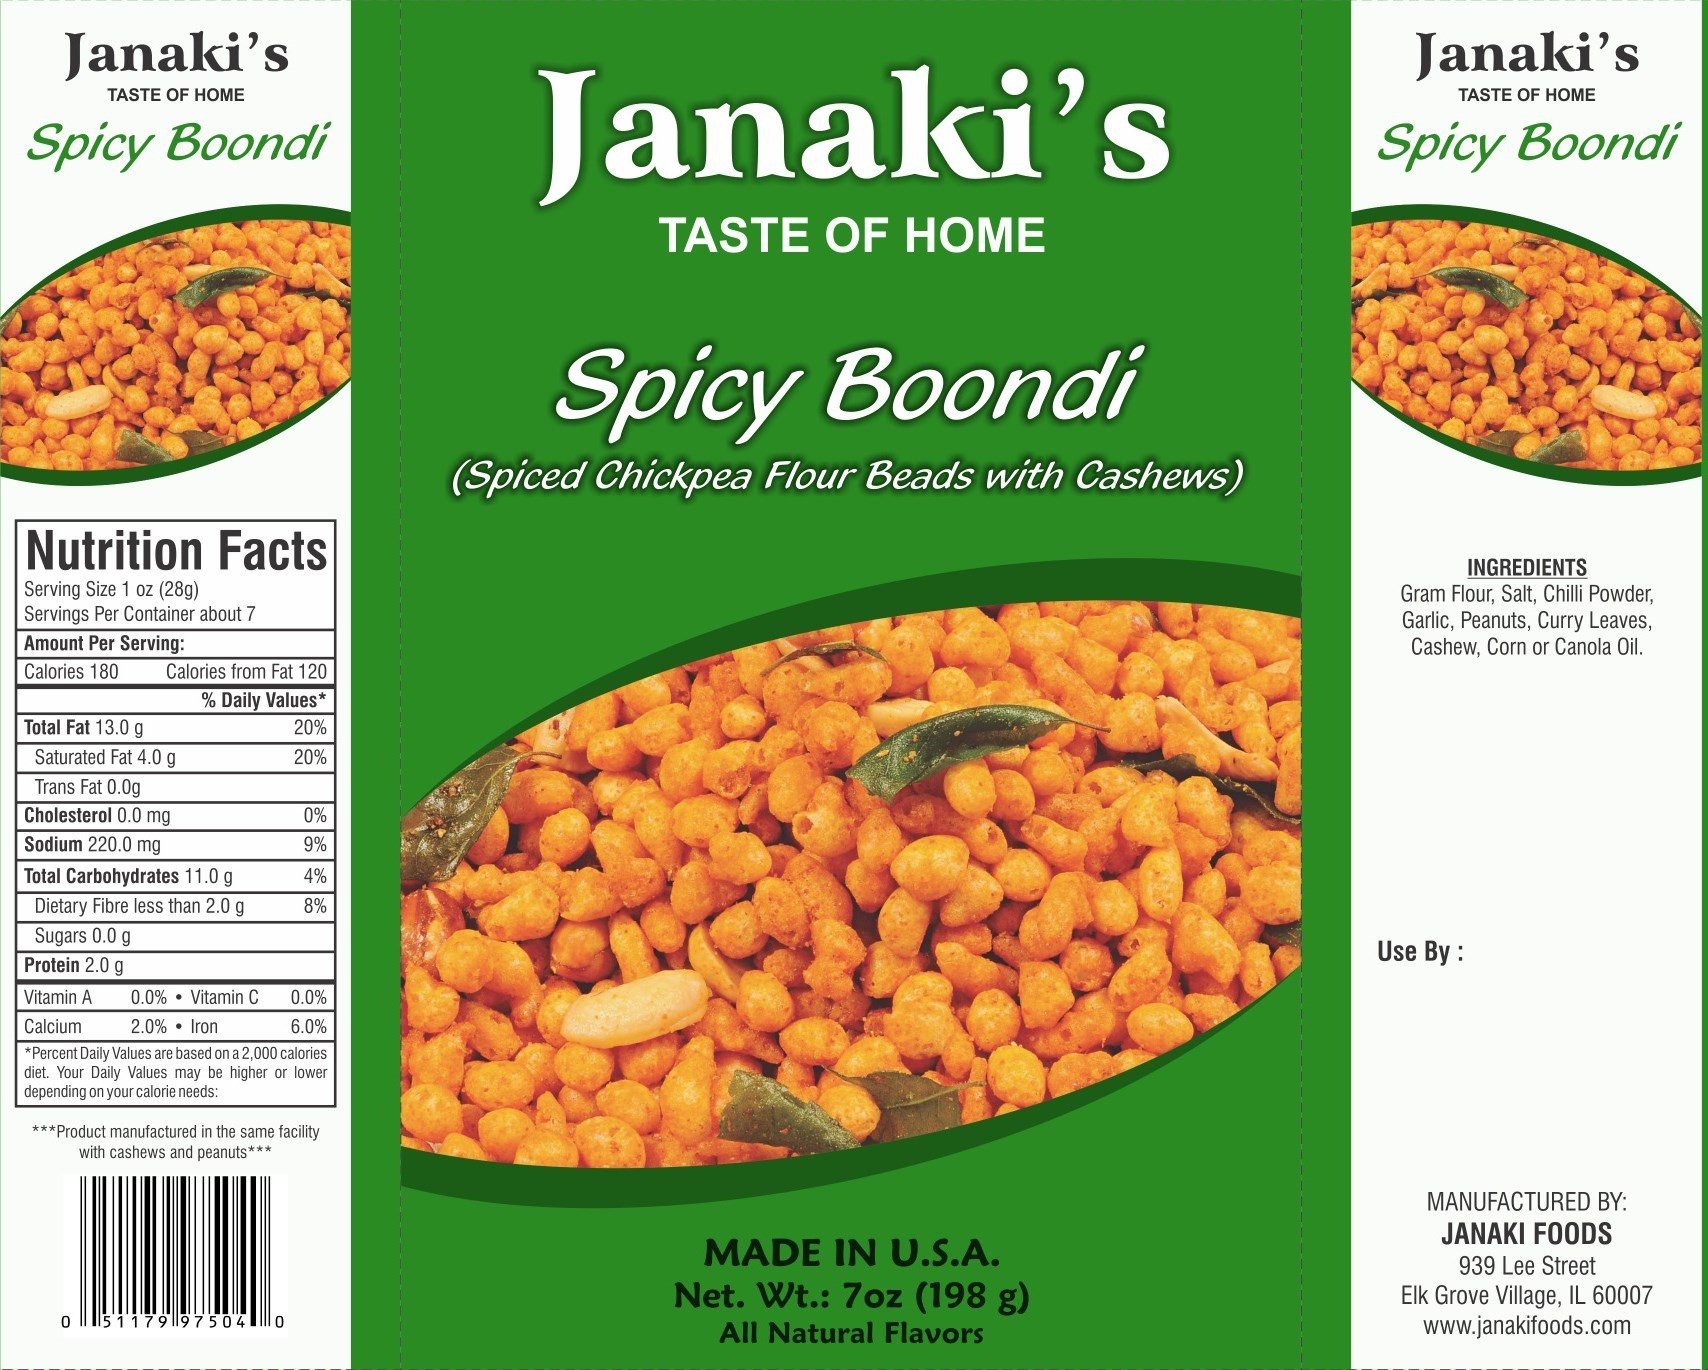 Janaki's Spicy Boondi (Pack of 10) by Janaki's